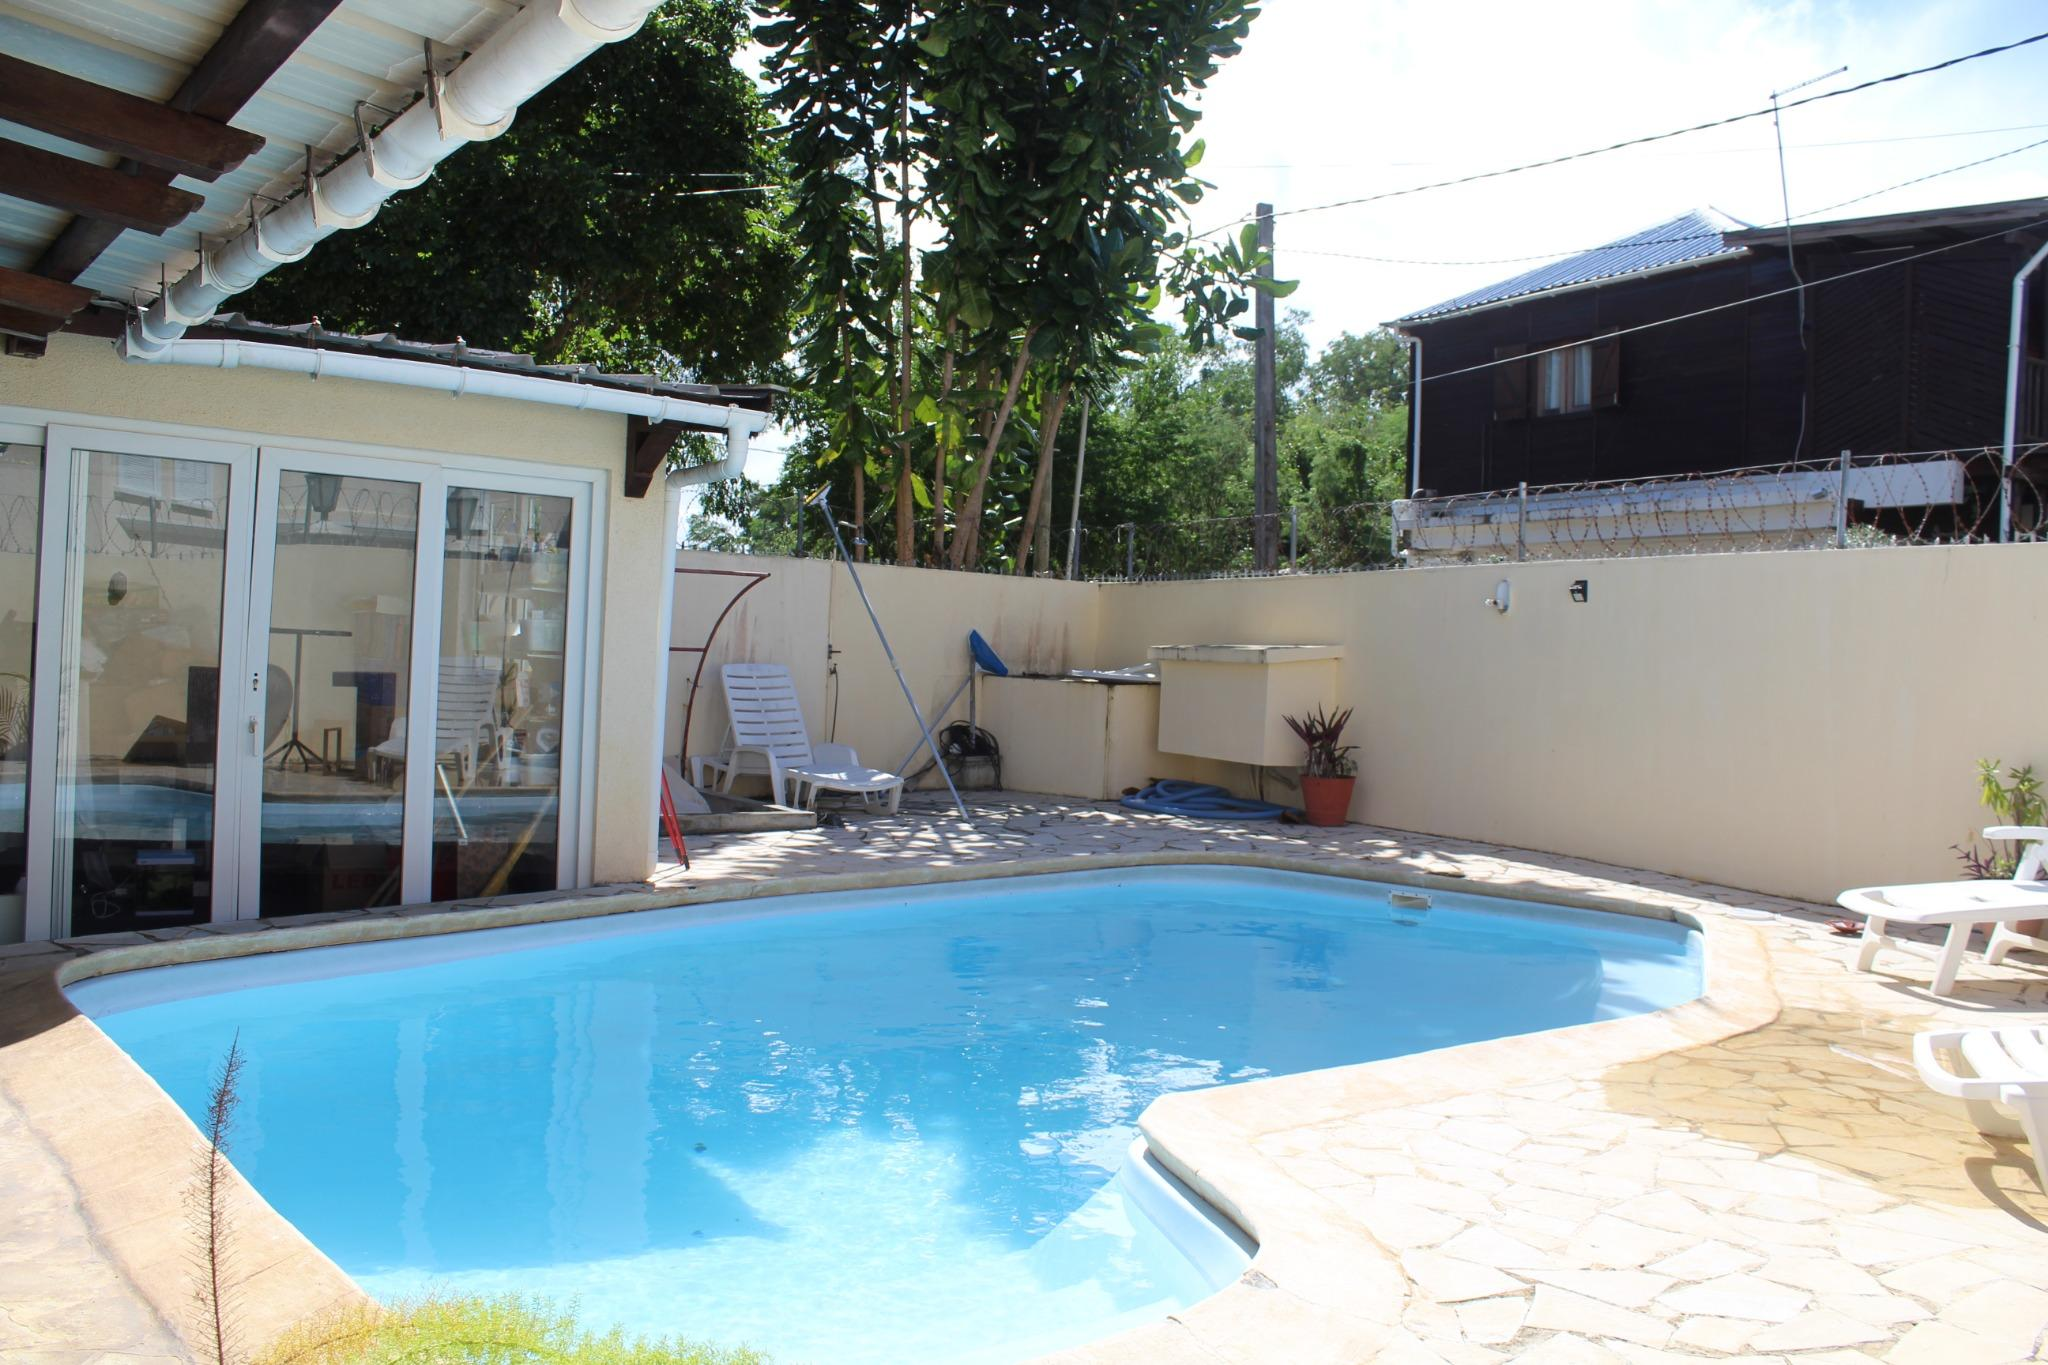 To rent – Townhouse in Turtle Bay – 30 seconds walk from the beach.